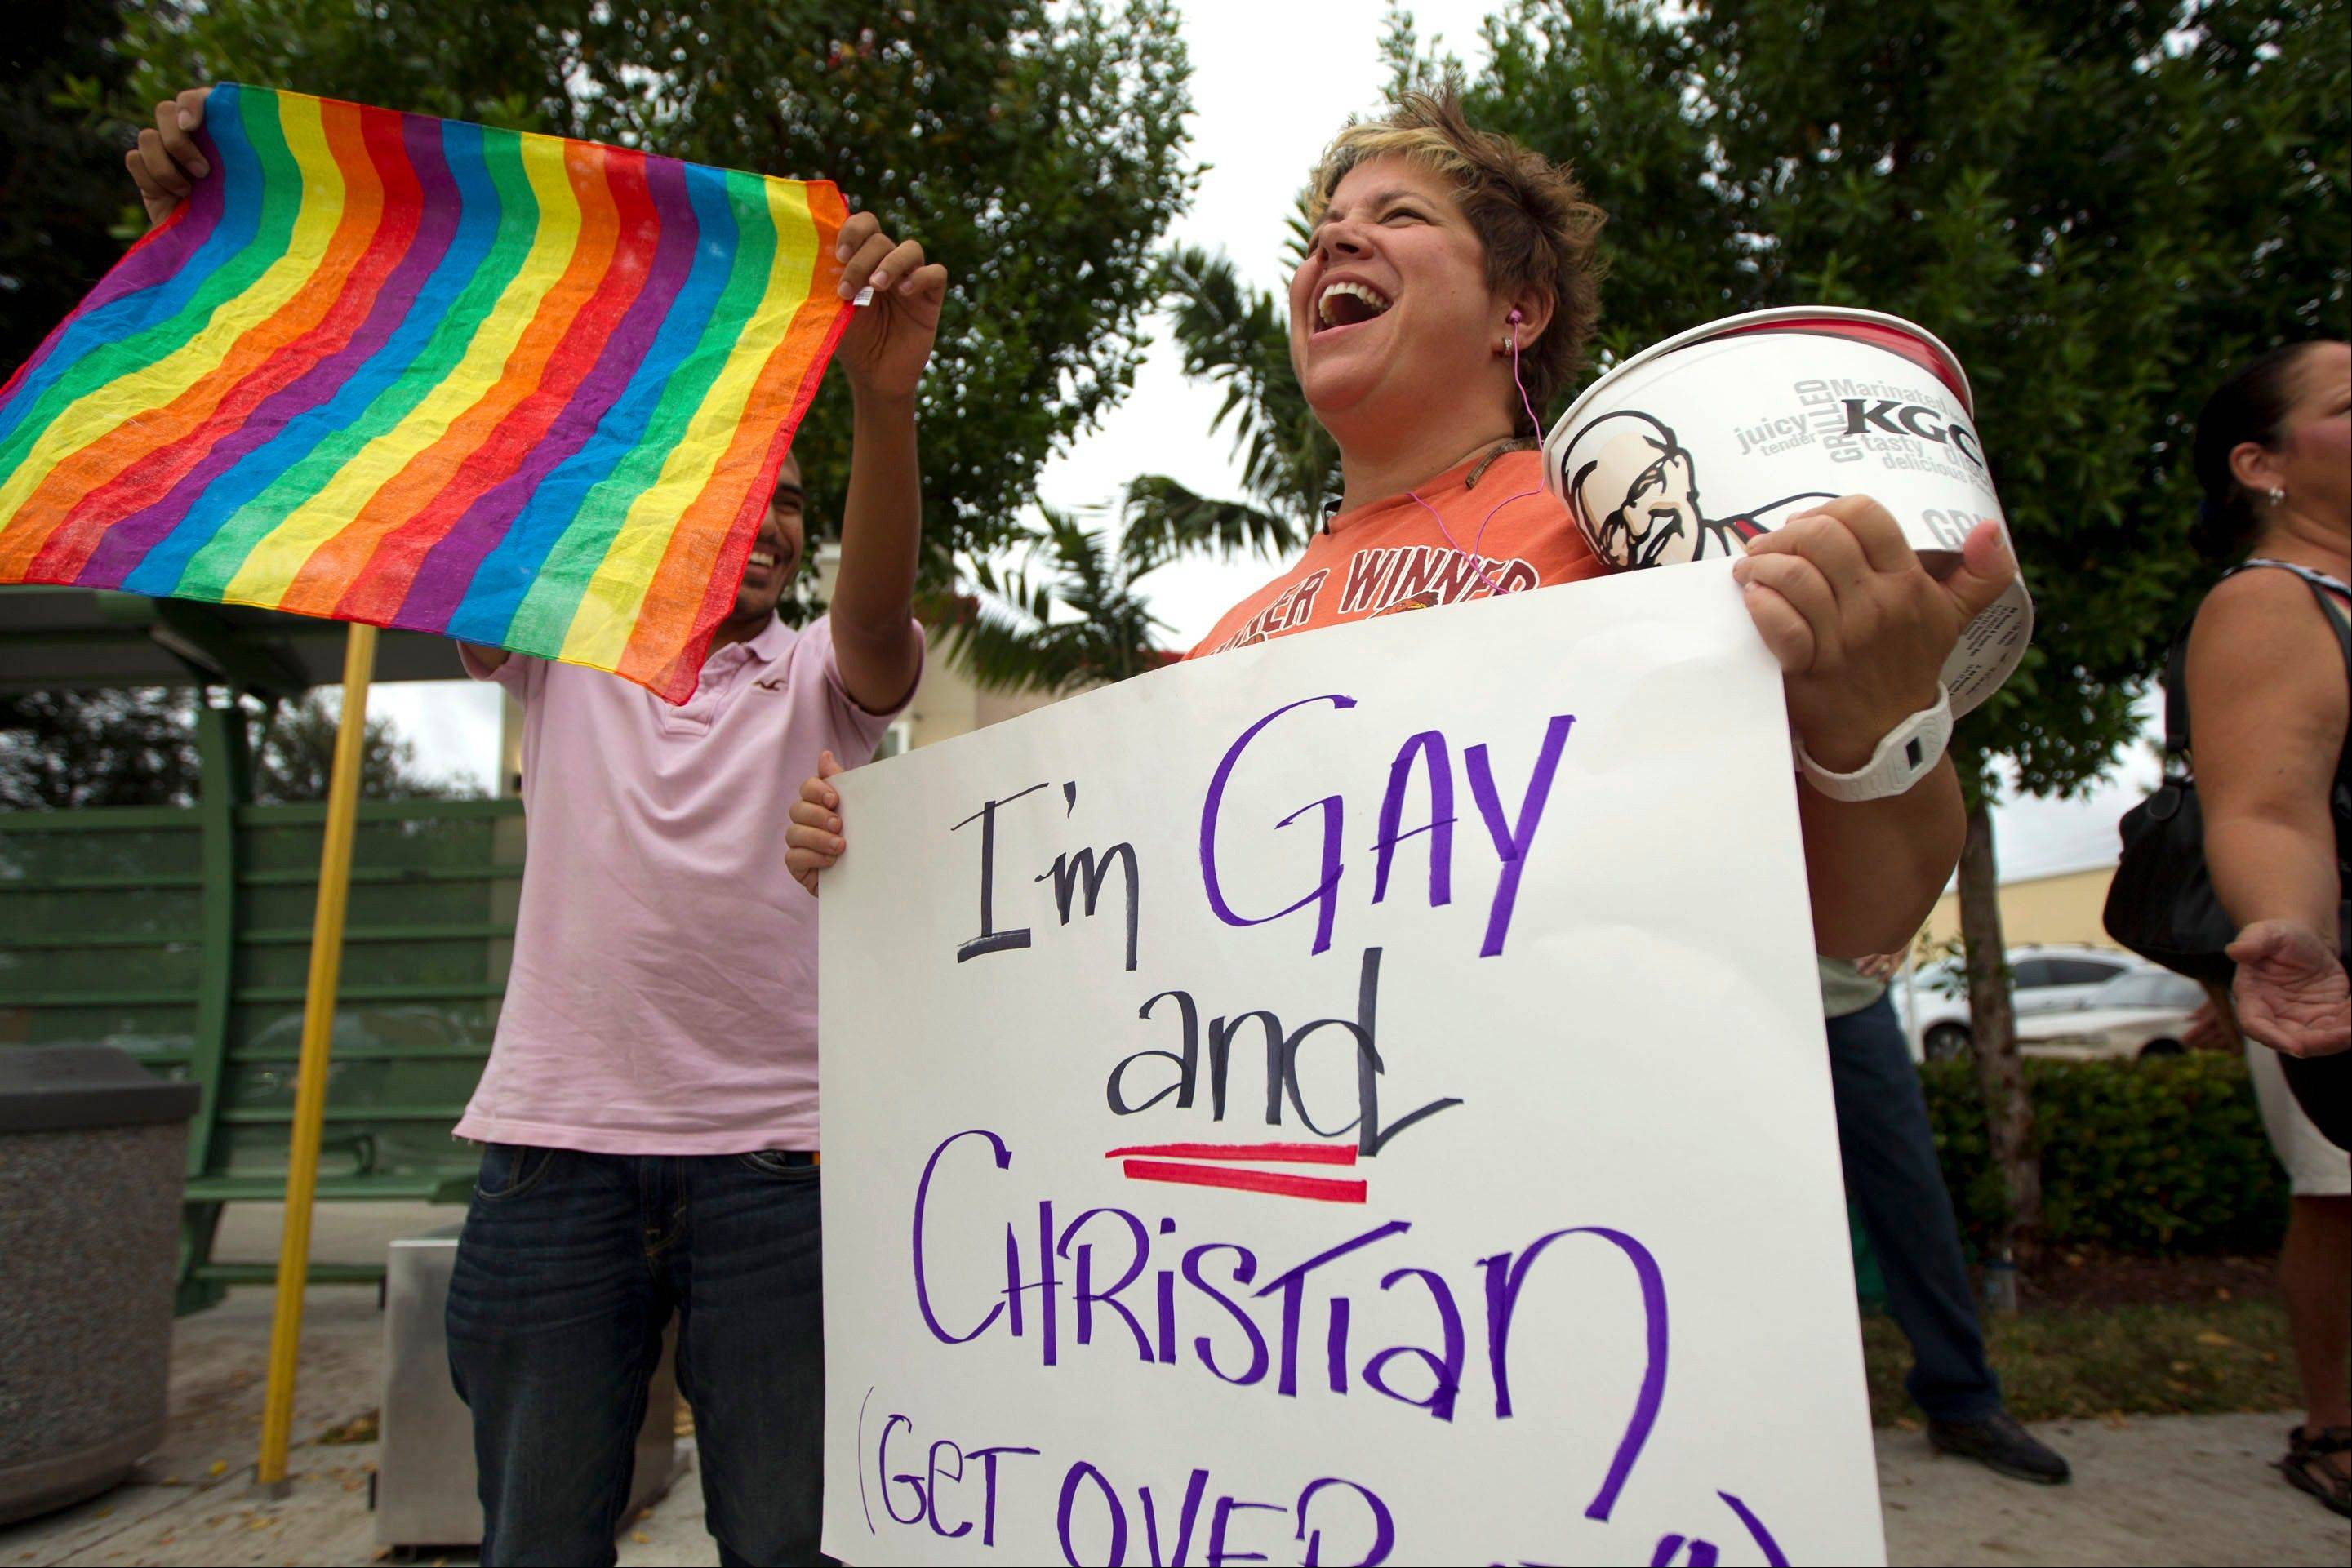 In a Friday, Aug. 3, 2012 file photo, Carri Jo Anderson holds a bucket of Kuntucky Fried Chicken and a gay pride sign as she joins the protest in front of a Chick-fil-A restaurant in Pompano Beach, Fla. Gay rights activists kissed at Chick-fil-A stores across the U.S. on Friday, just days after the company set a sales record when customers flocked to the restaurants to show support for the fast-food chain president's opposition to gay marriage. On this and so many other issues this election year, it seems harder to find that middle-ground gray when our debates seem so very black or white.